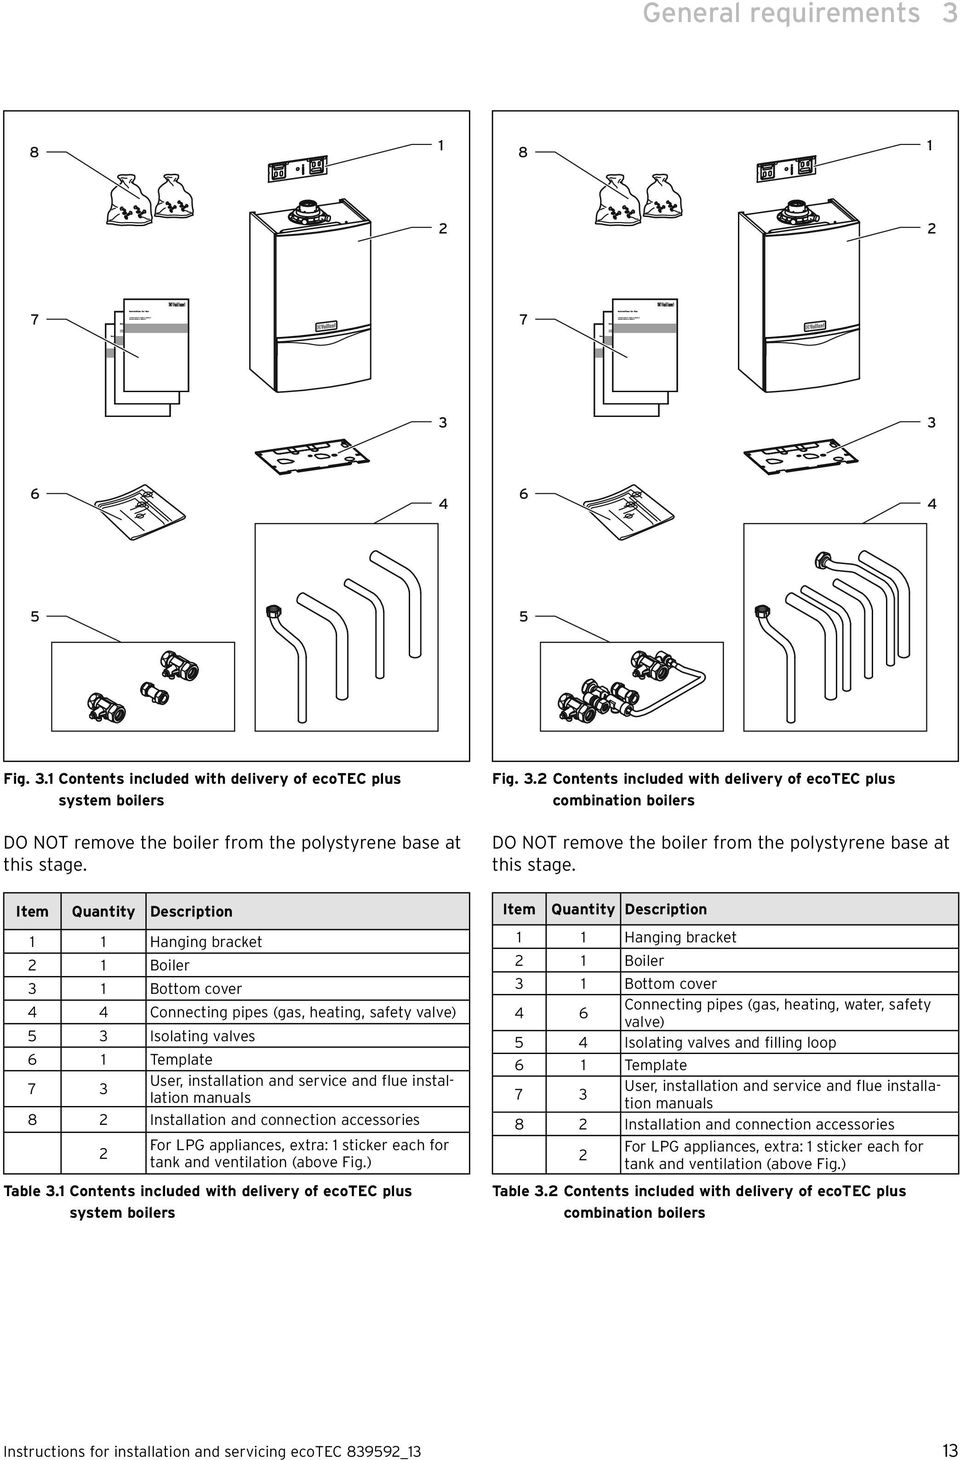 flue installation manuals 8 2 Installation and connection accessories 2 For  LPG appliances, extra: